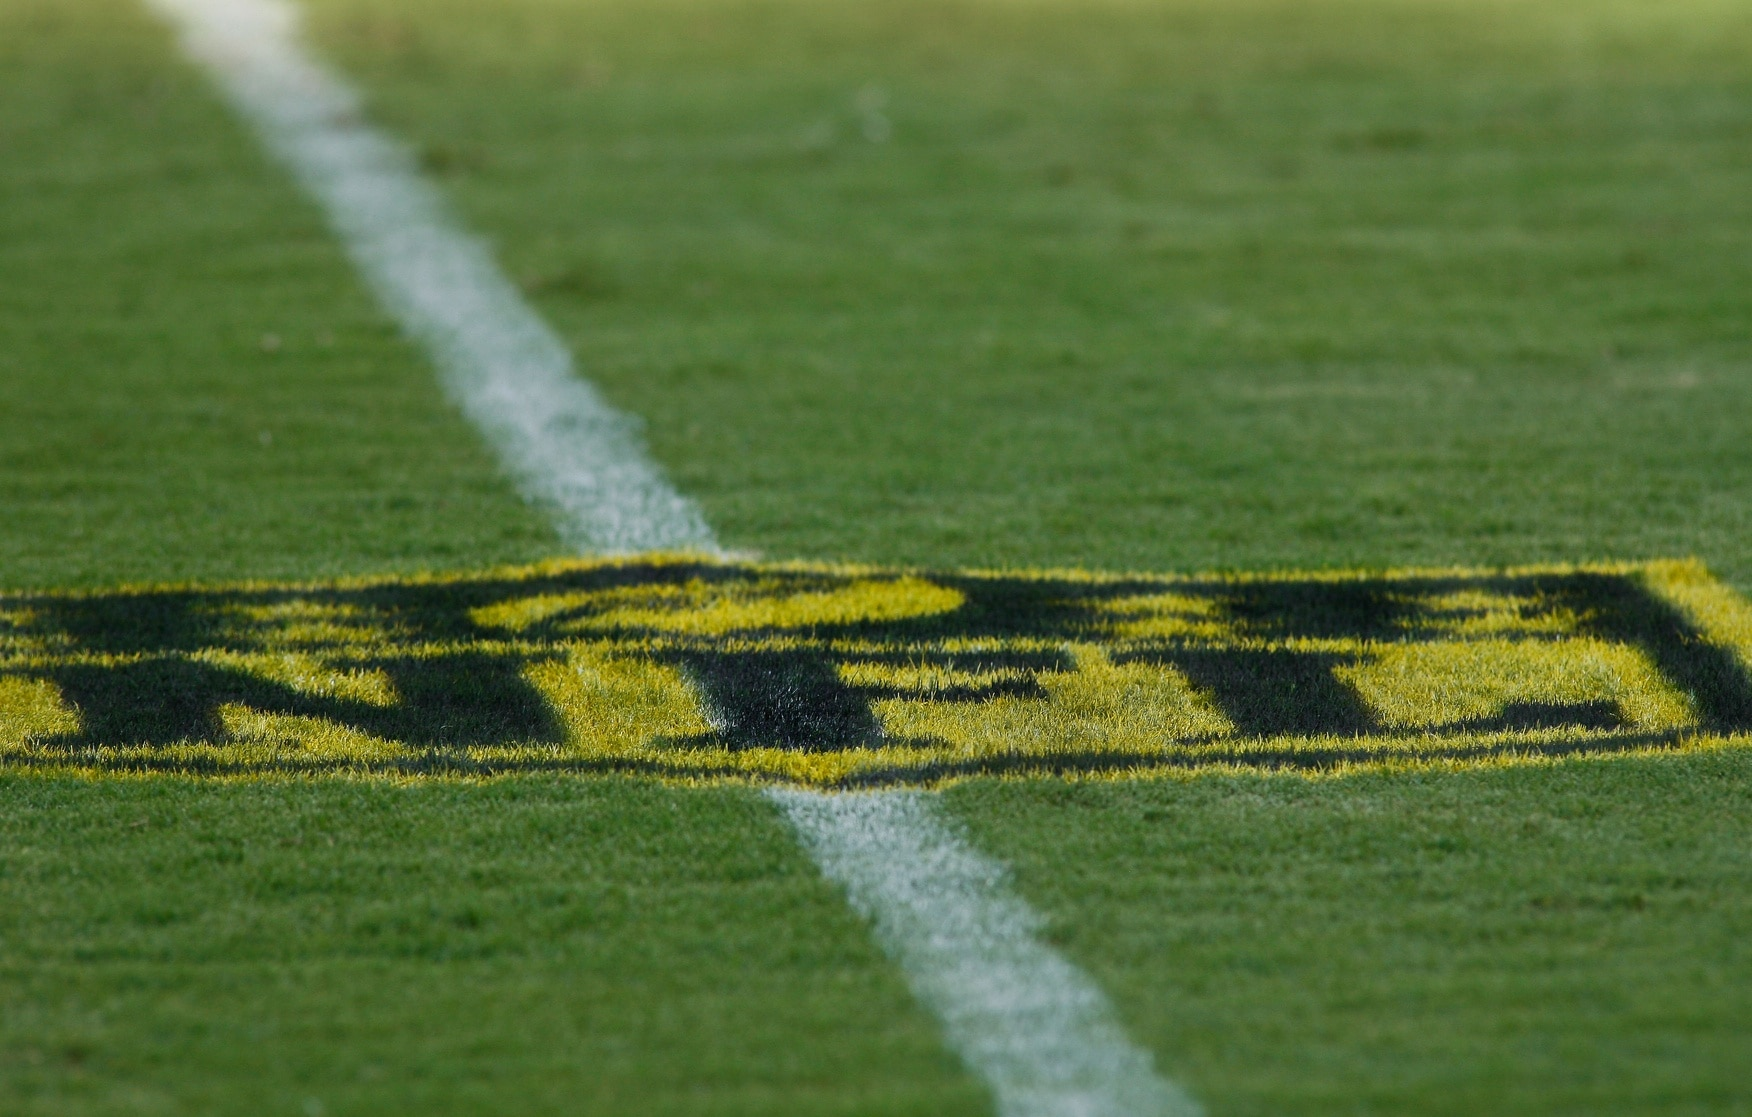 "Aug 14, 2015; Jacksonville, FL, USA; A gold-painted NFL logo on the field before the start of a preseason NFL football game between the Pittsburgh Steelers and the Jacksonville Jaguars at EverBank Field. The logo is part of the NFL's ""On the Fifty"" campaign, to promote Super Bowl 50 next February. The Jacksonville Jaguars won 23-21. Mandatory Credit: Phil Sears-USA TODAY Sports"